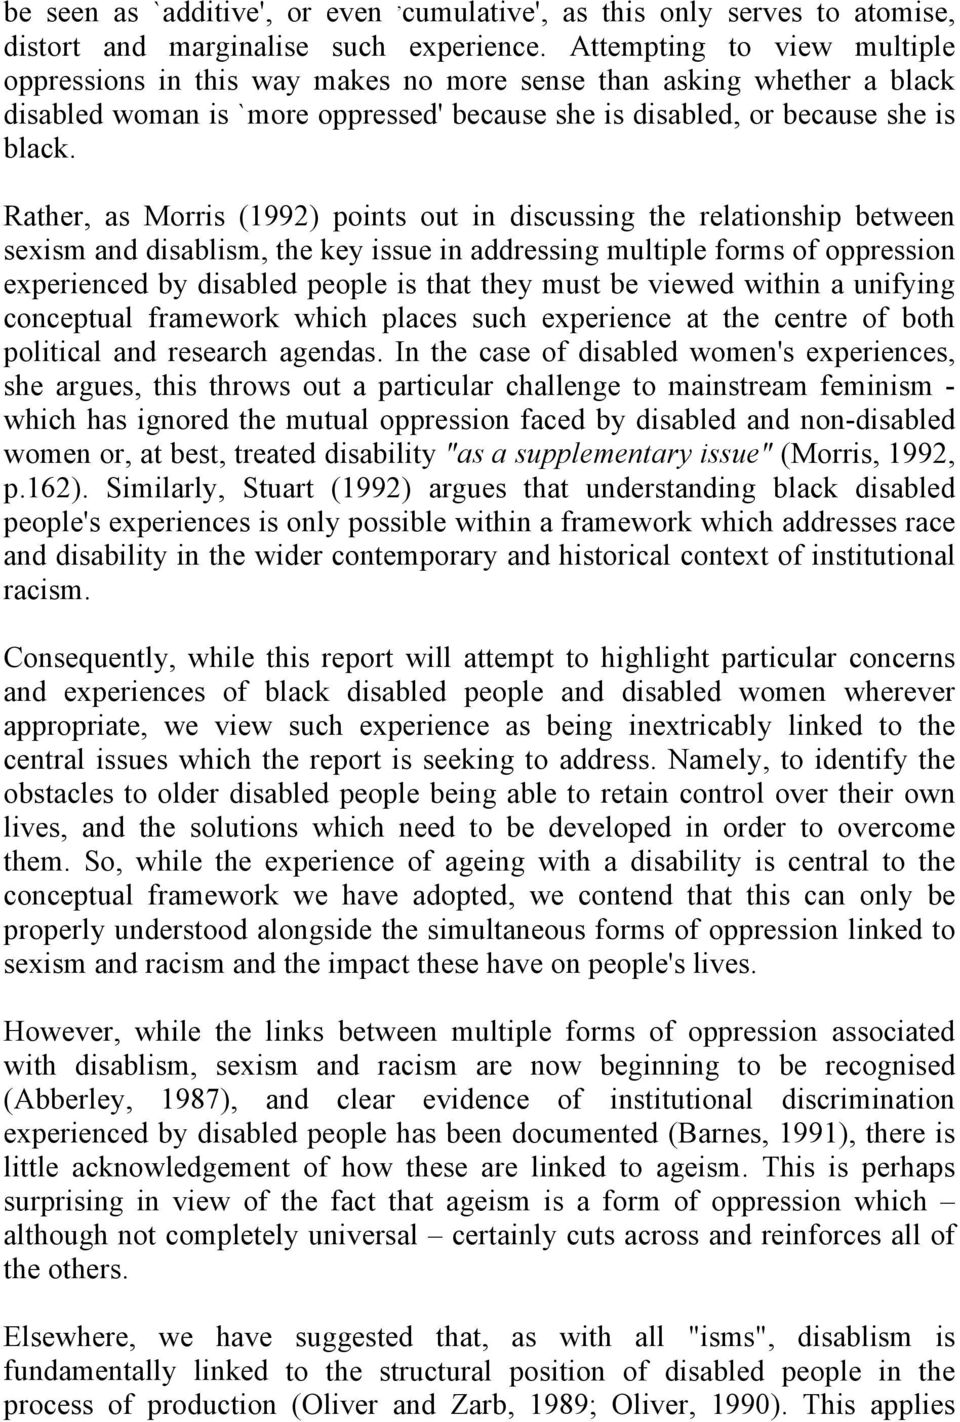 Rather, as Morris (1992) points out in discussing the relationship between sexism and disablism, the key issue in addressing multiple forms of oppression experienced by disabled people is that they